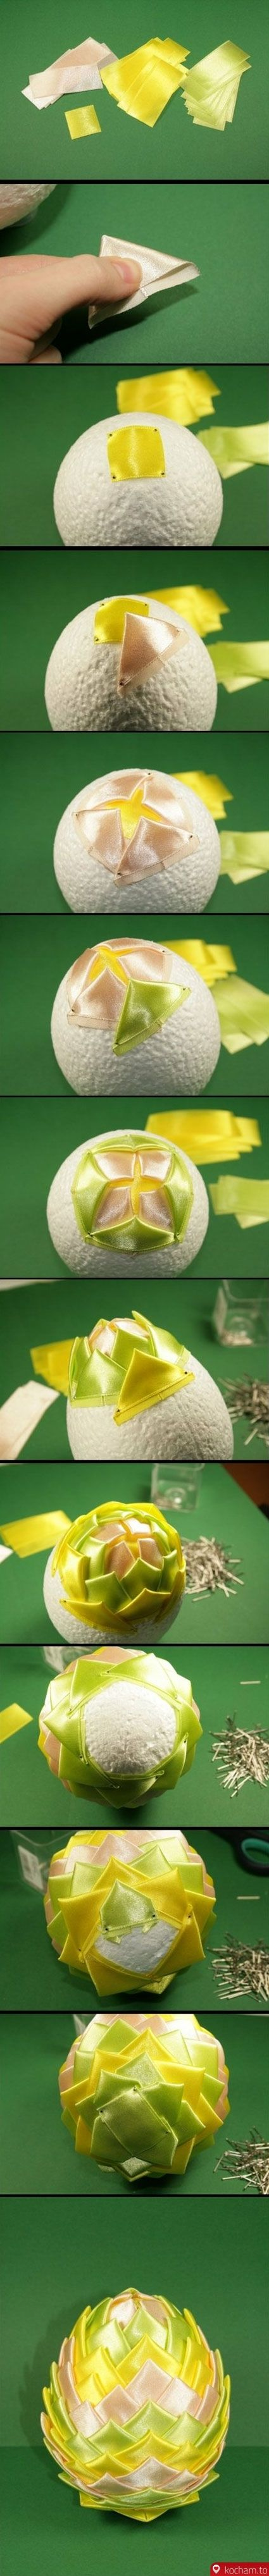 DIY- cool idea for an ornament, table decor or hanging decoration.